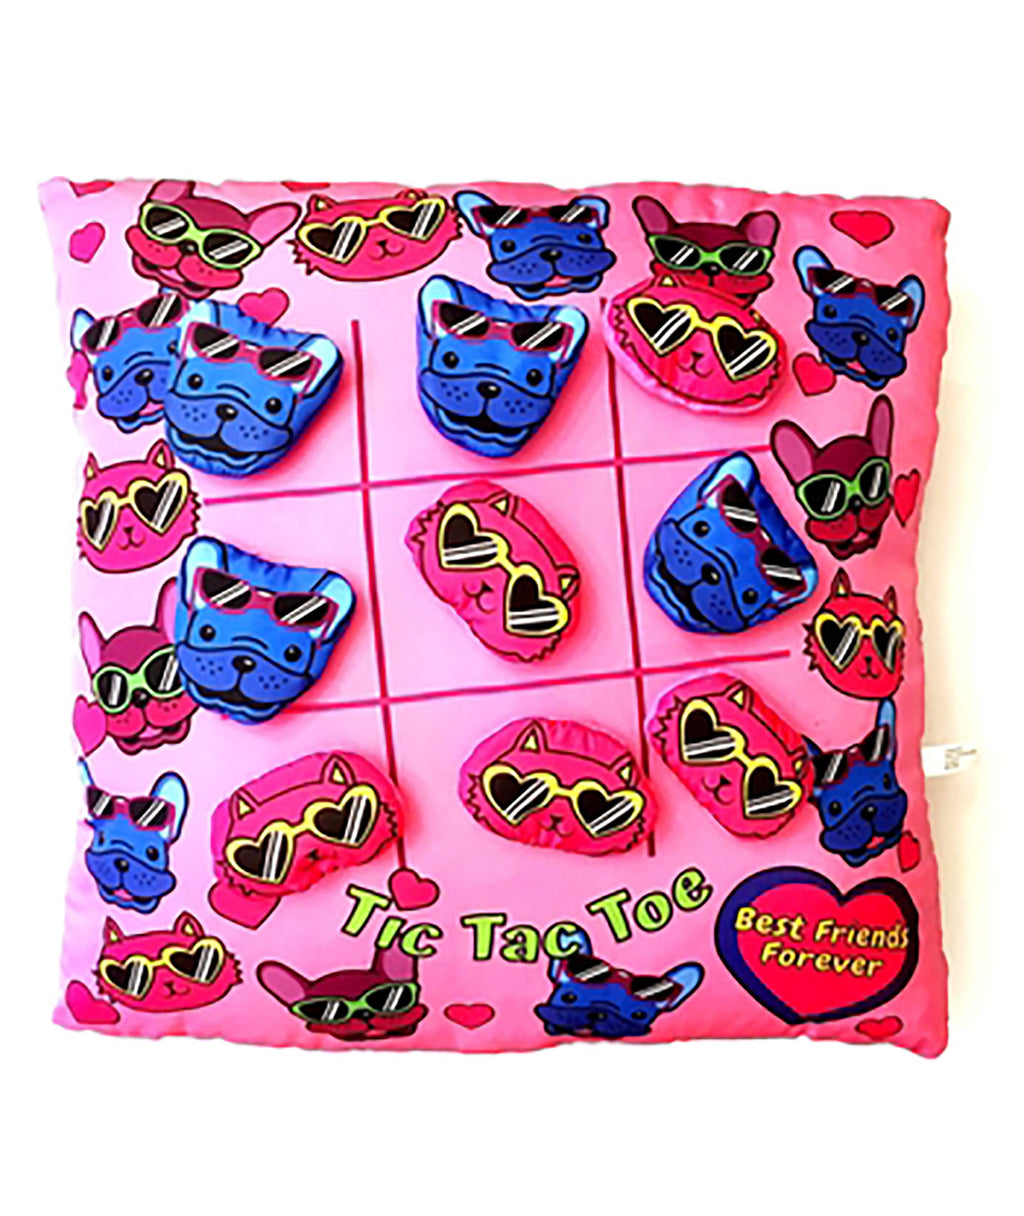 Confetti and Friends Cat and Dog Tic-Tac-Toe Autograph Pillow